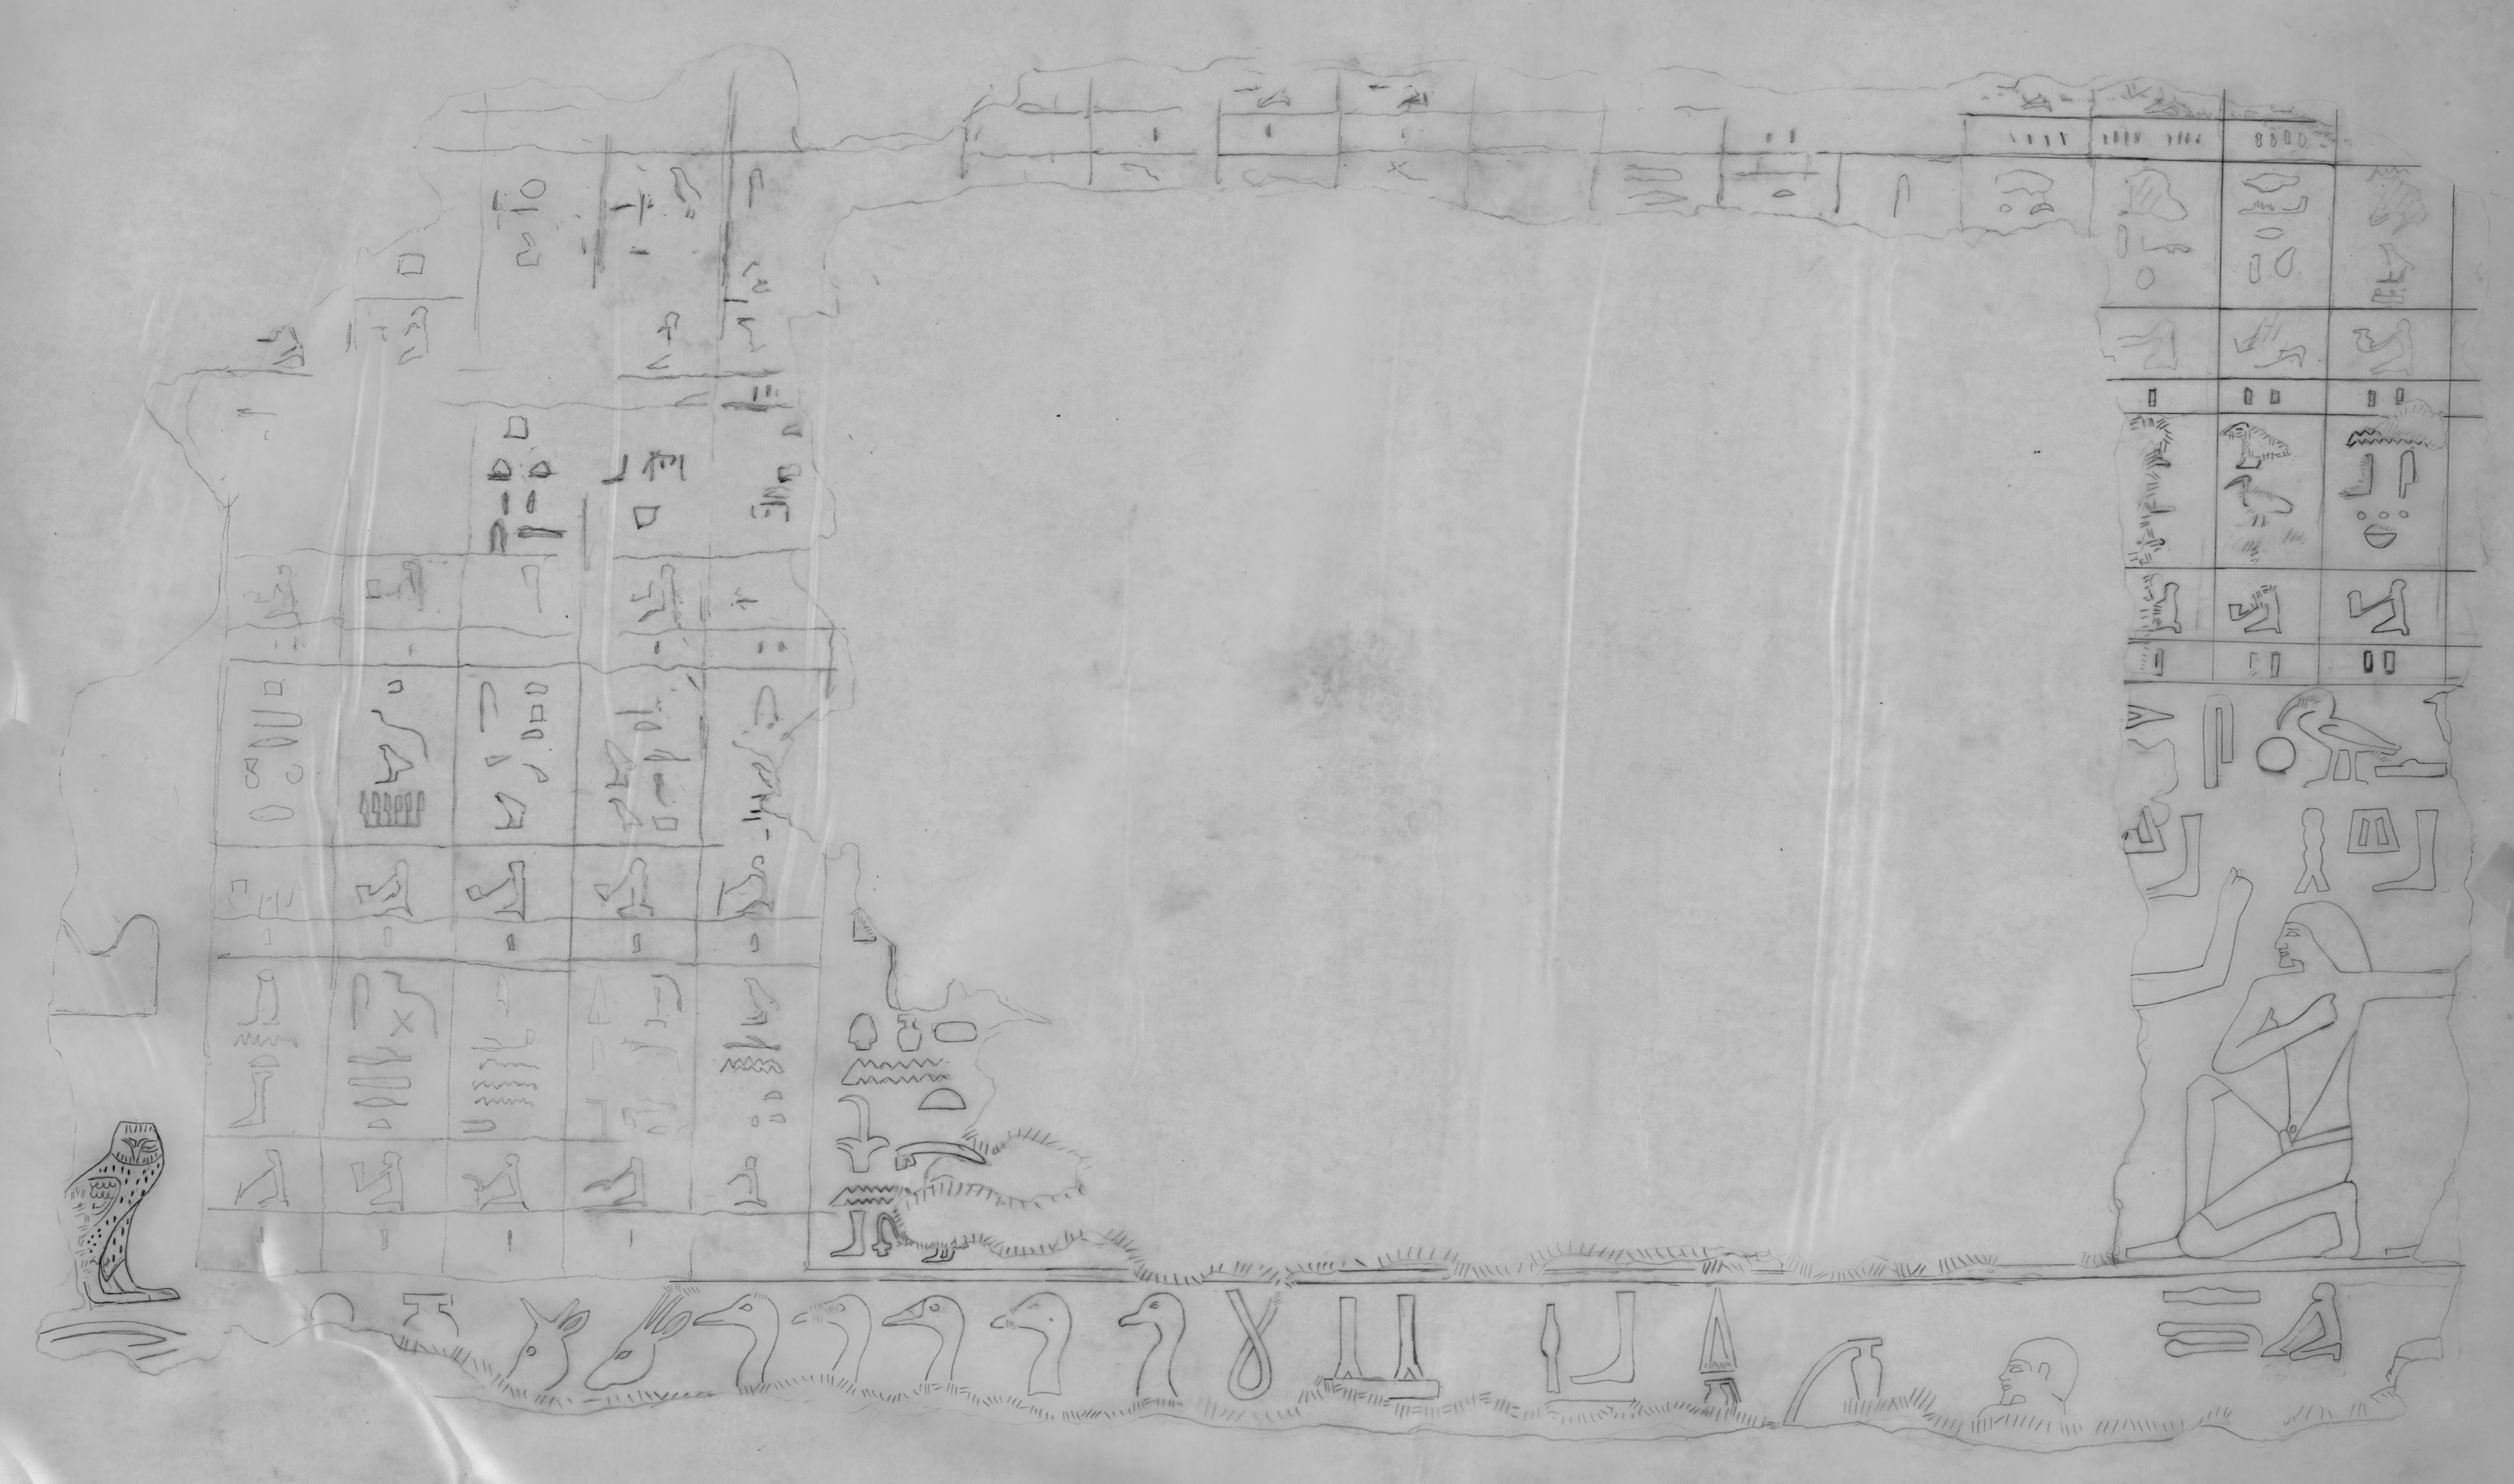 Drawings: G 2382 (originally G 2381): relief from block, offering list